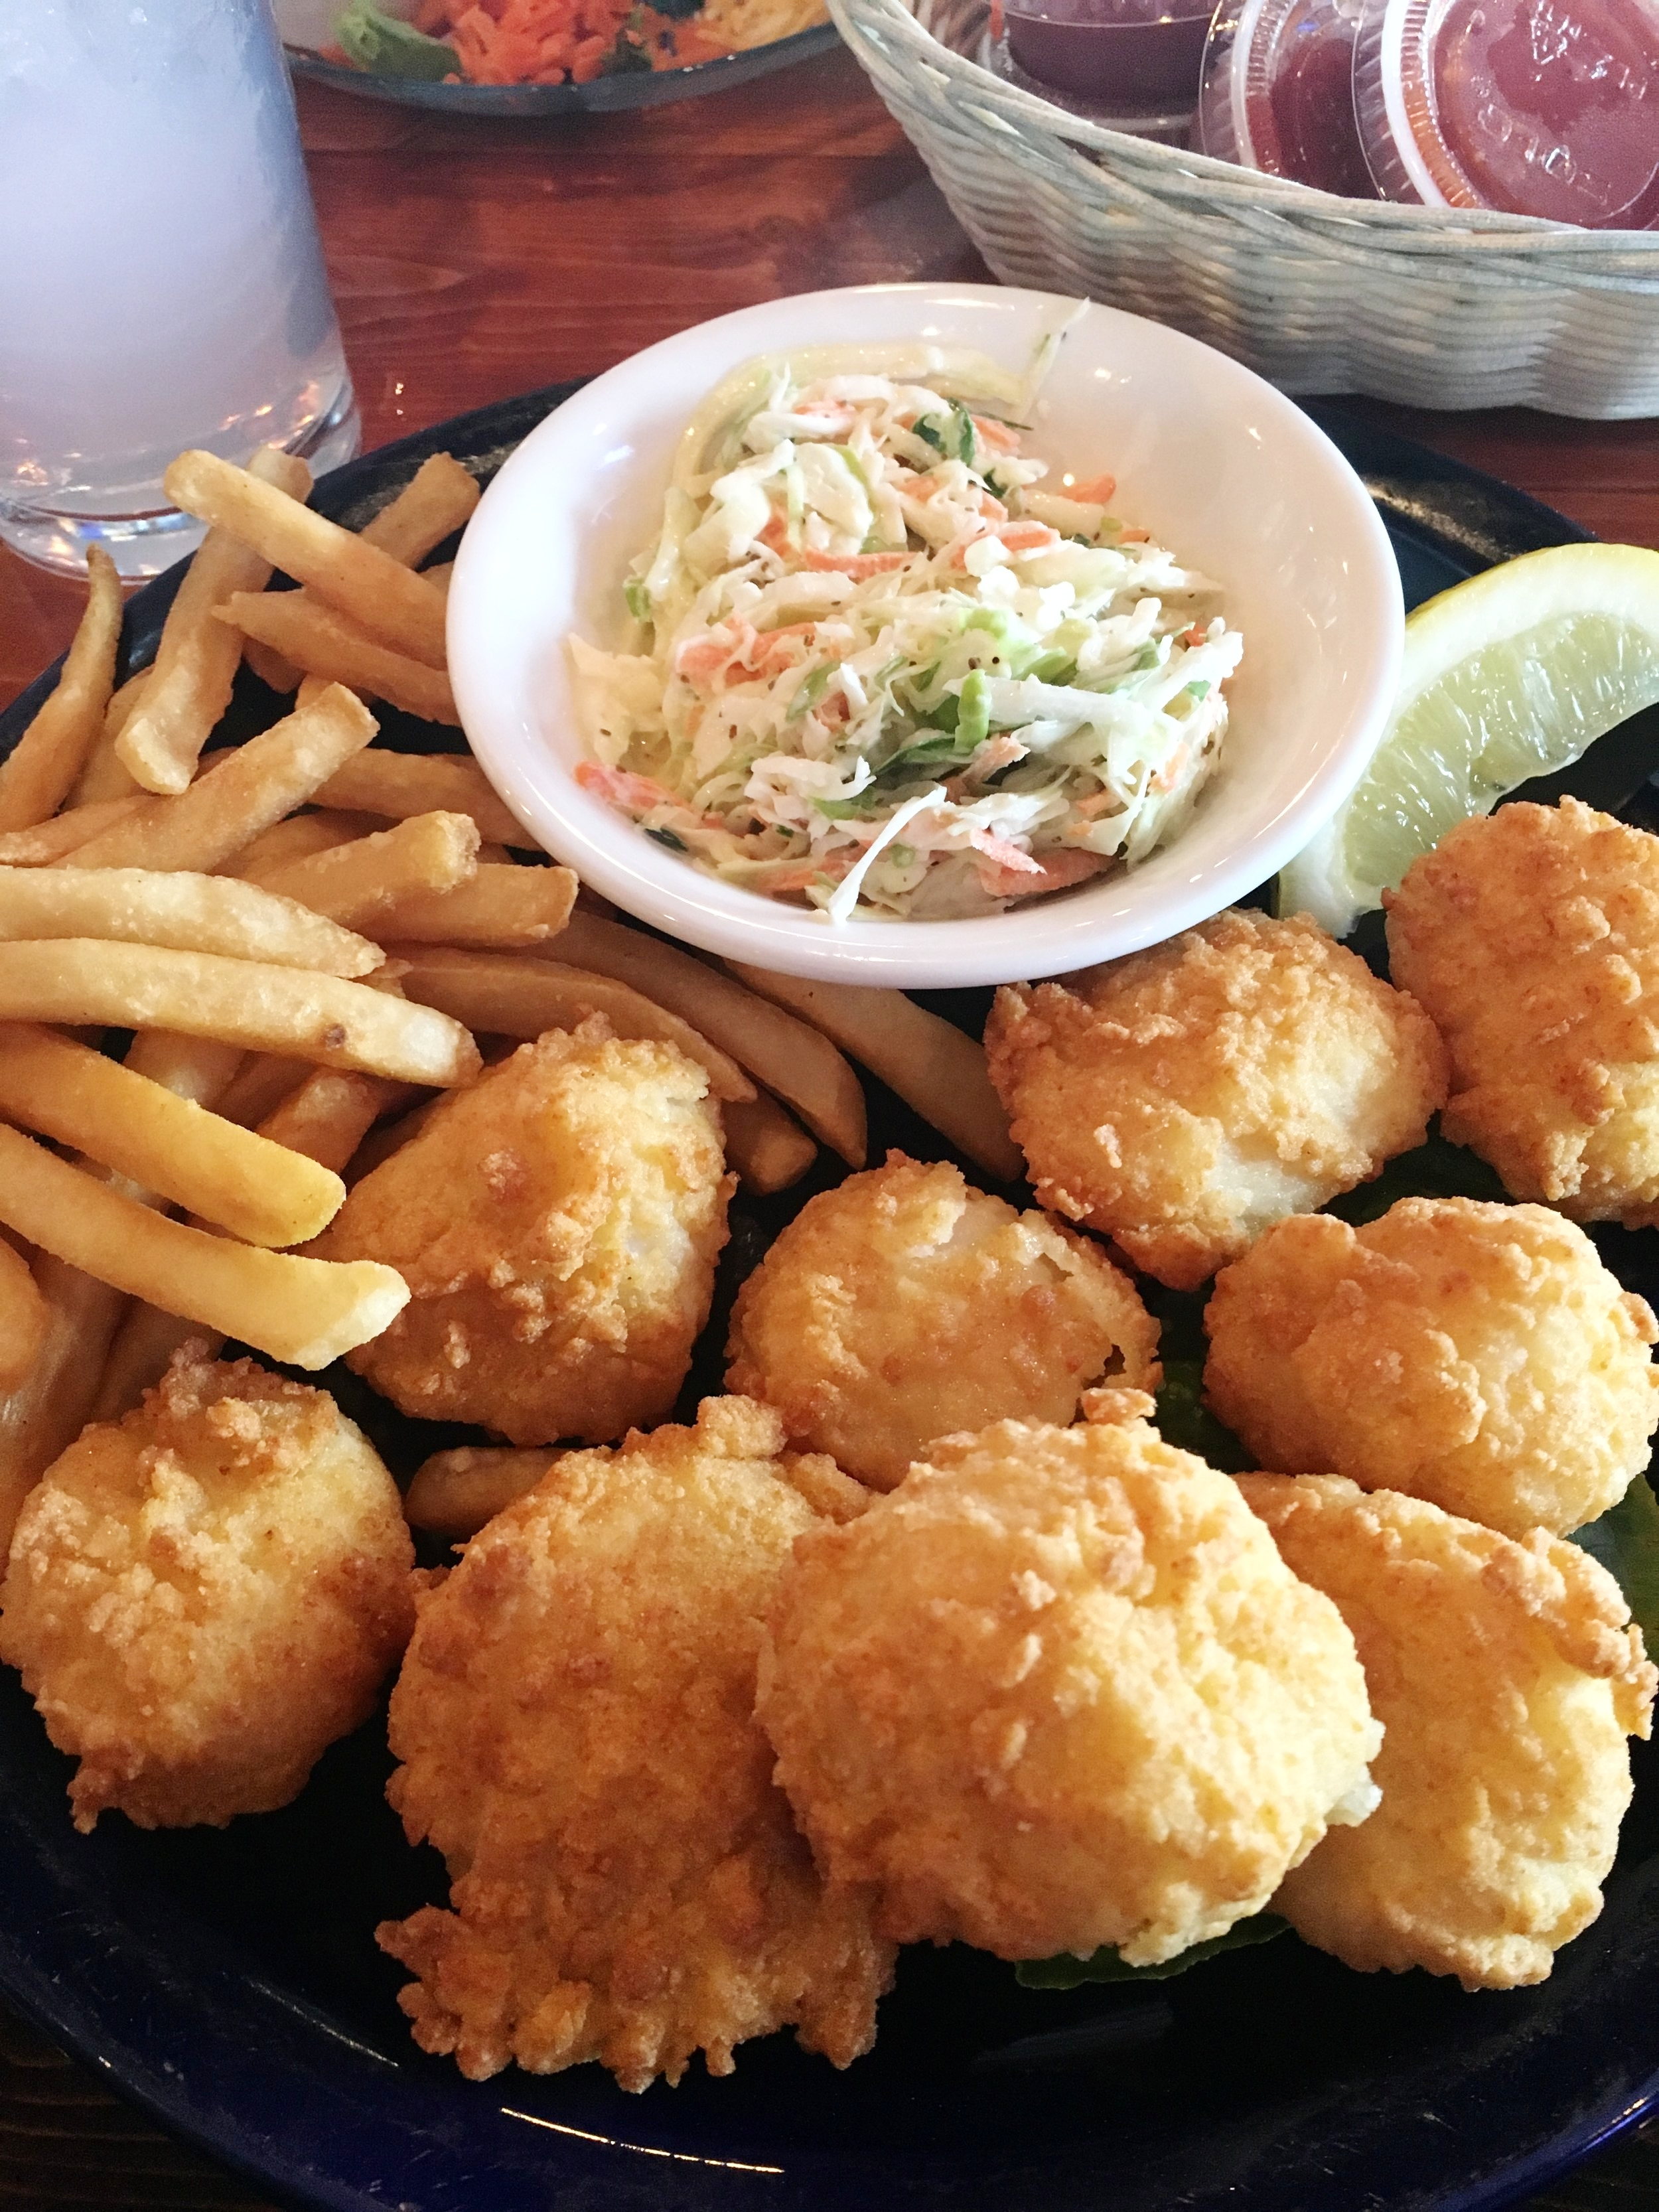 My fried sea scallops, coleslaw, and french fries. The price was around $24.